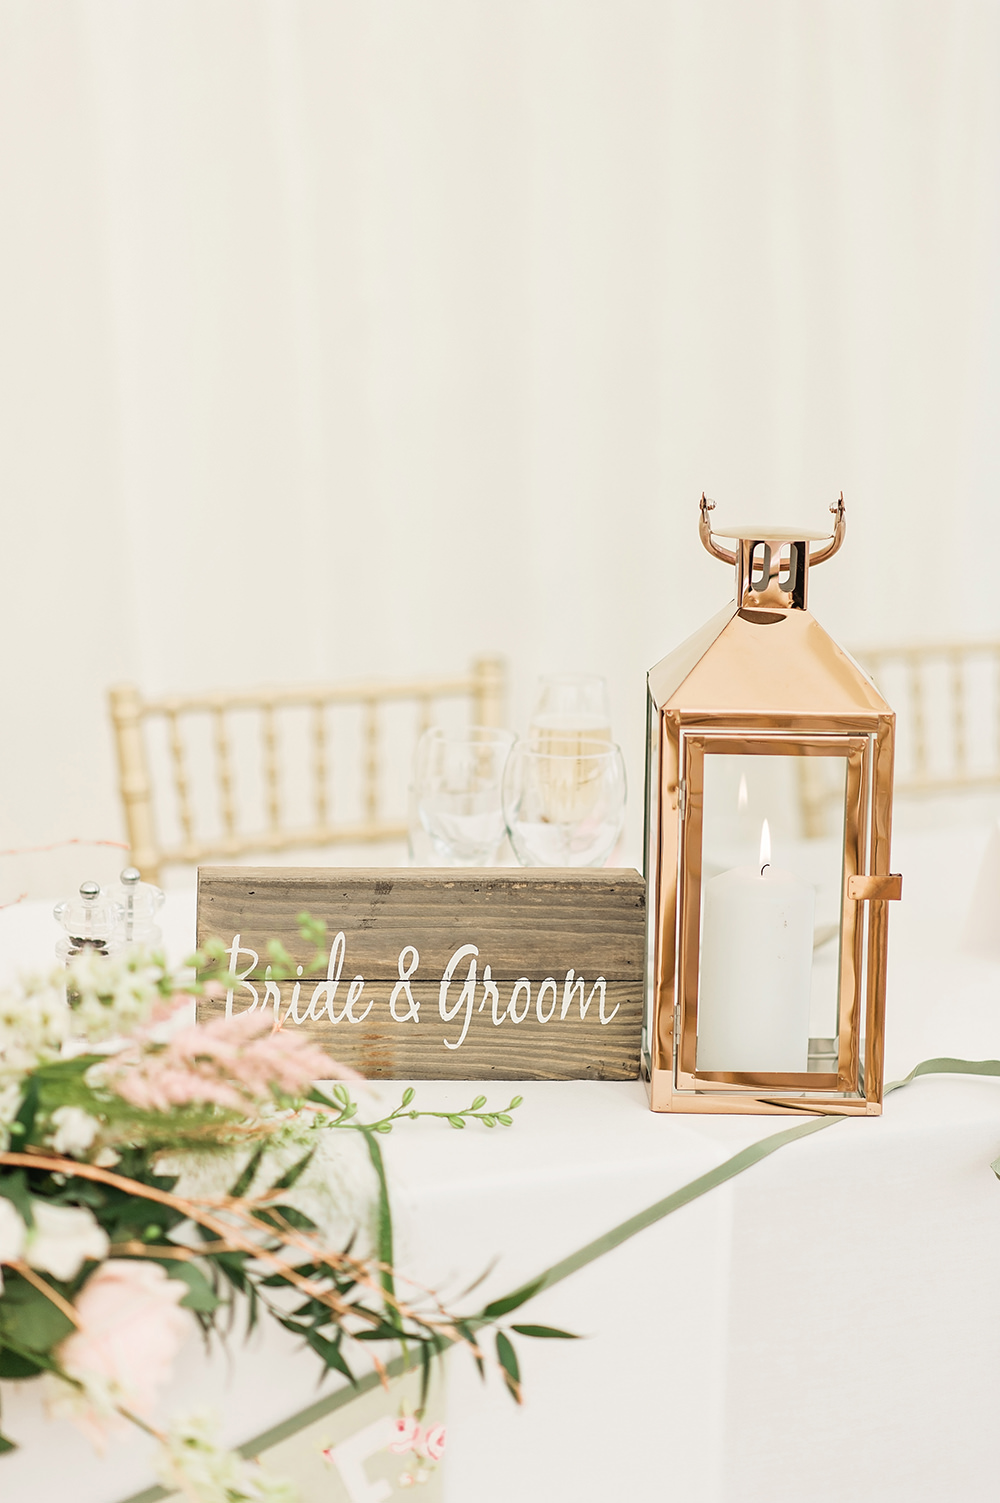 Bride & Groom Sign Wooden Sign Storm Lantern Edmondsham House Wedding Darima Frampton Photography